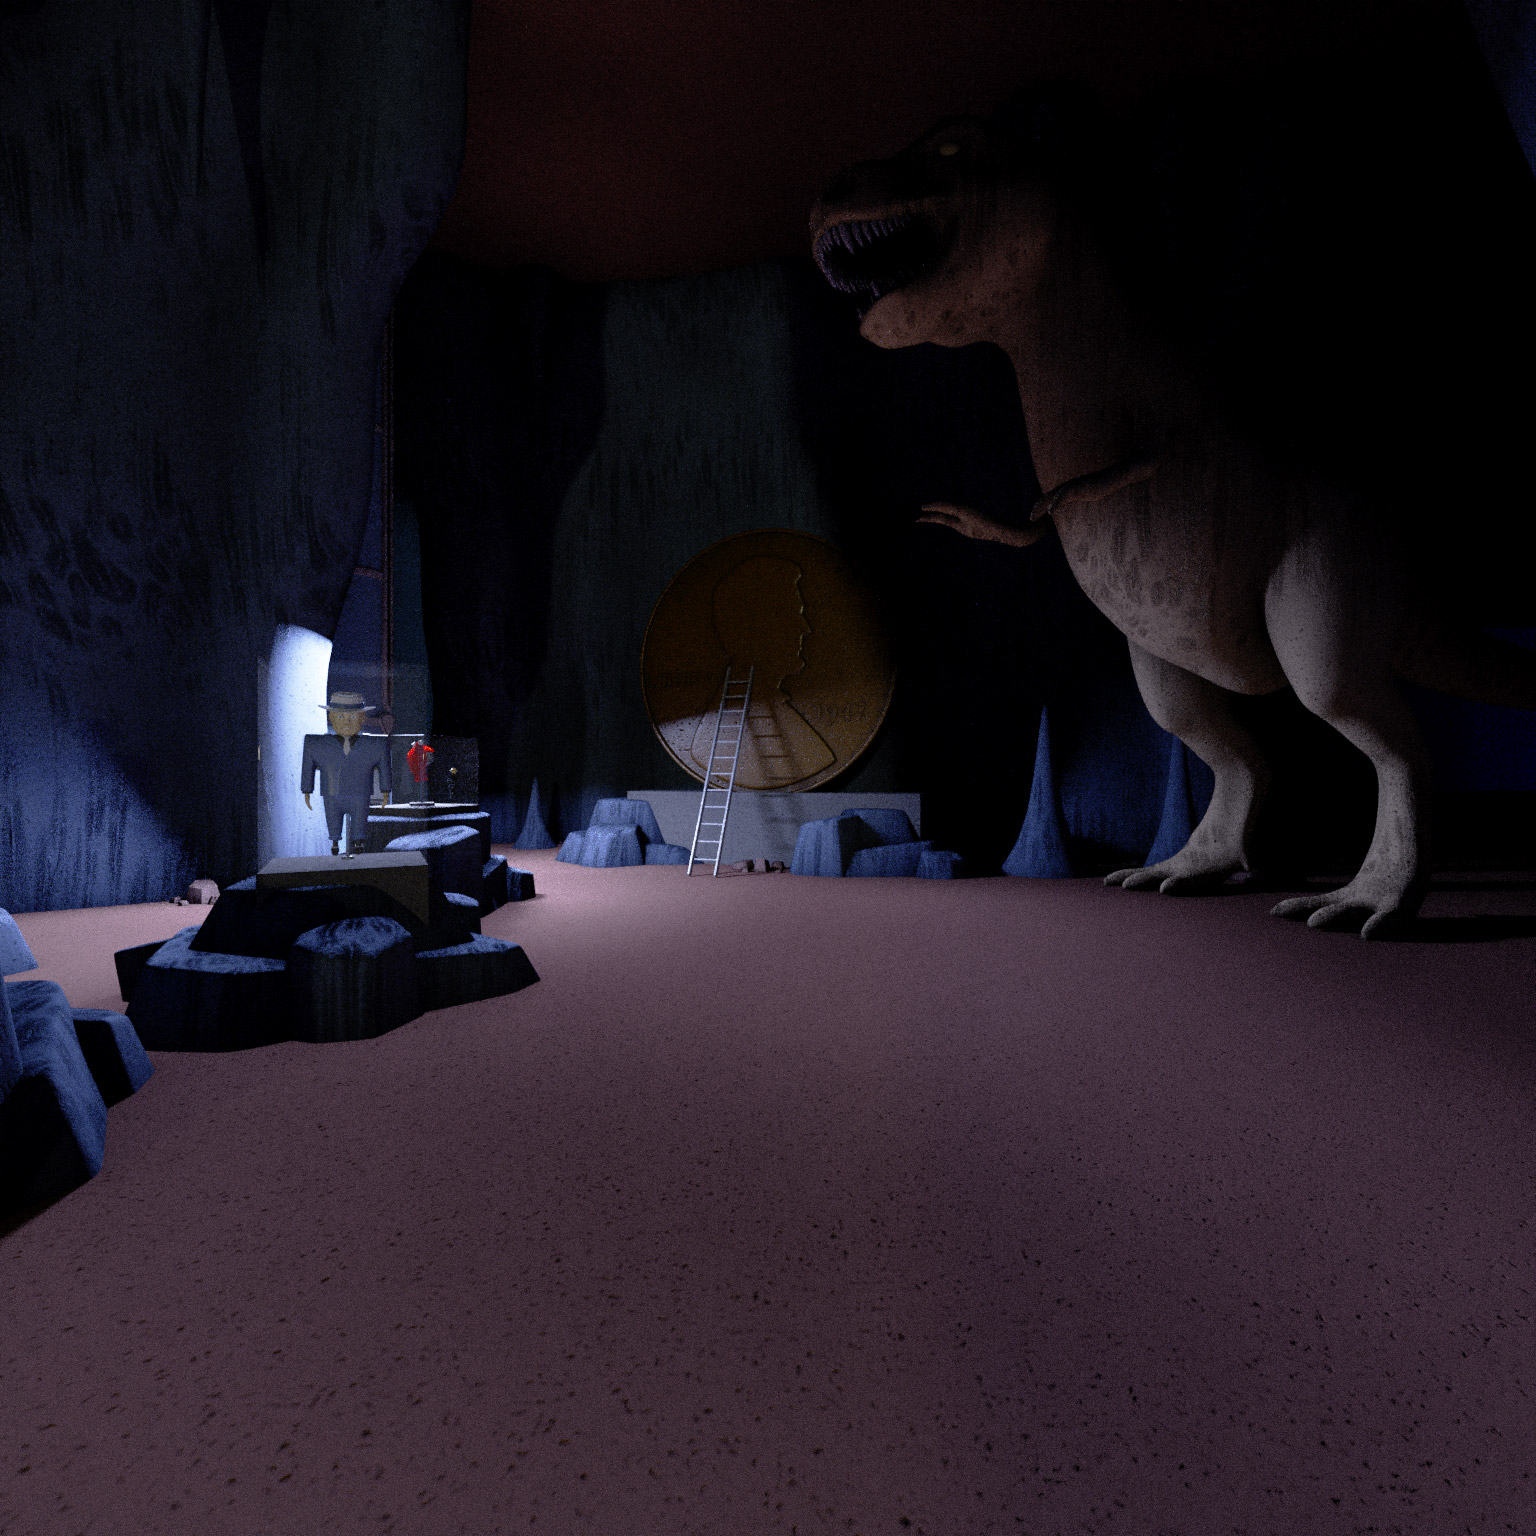 Lincoln Tech Near Me >> First Look: 'Batman' Gear VR Experience Featuring OTOY's Incredible 18k Cubemap Video Tech ...